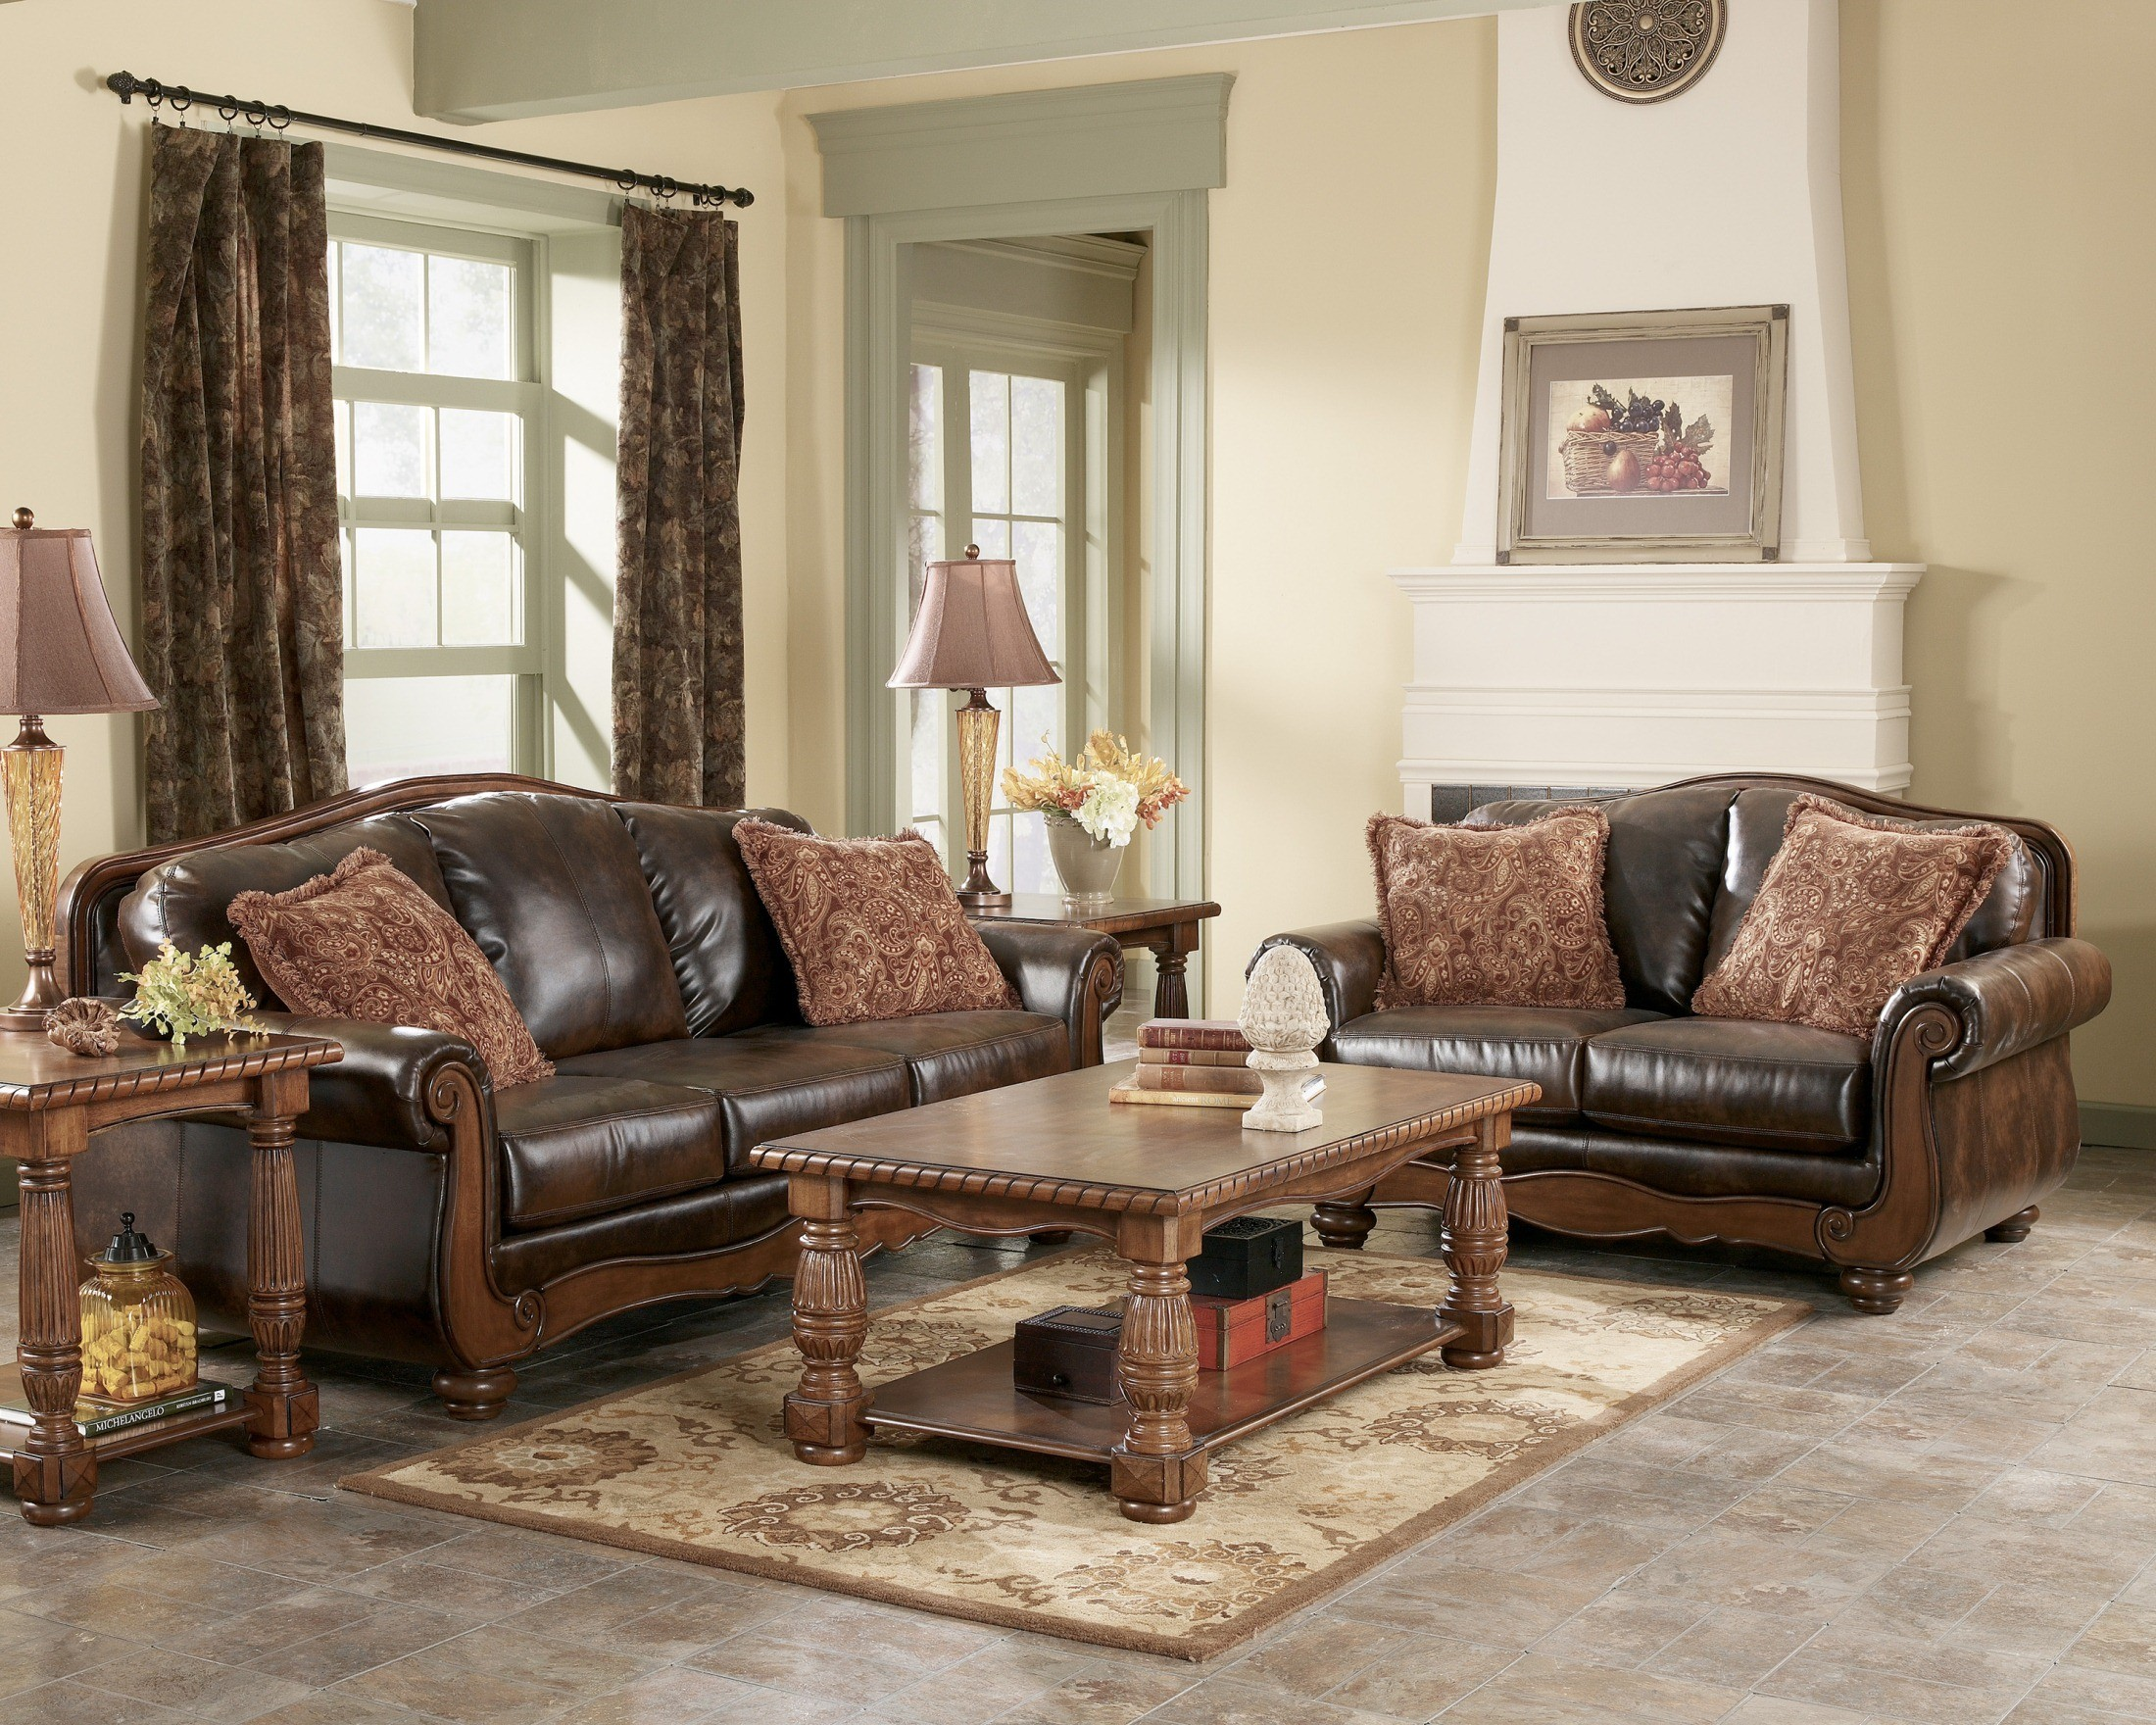 American Classic Living Room Design Barcelona Antique Living Room Set From Ashley 55300